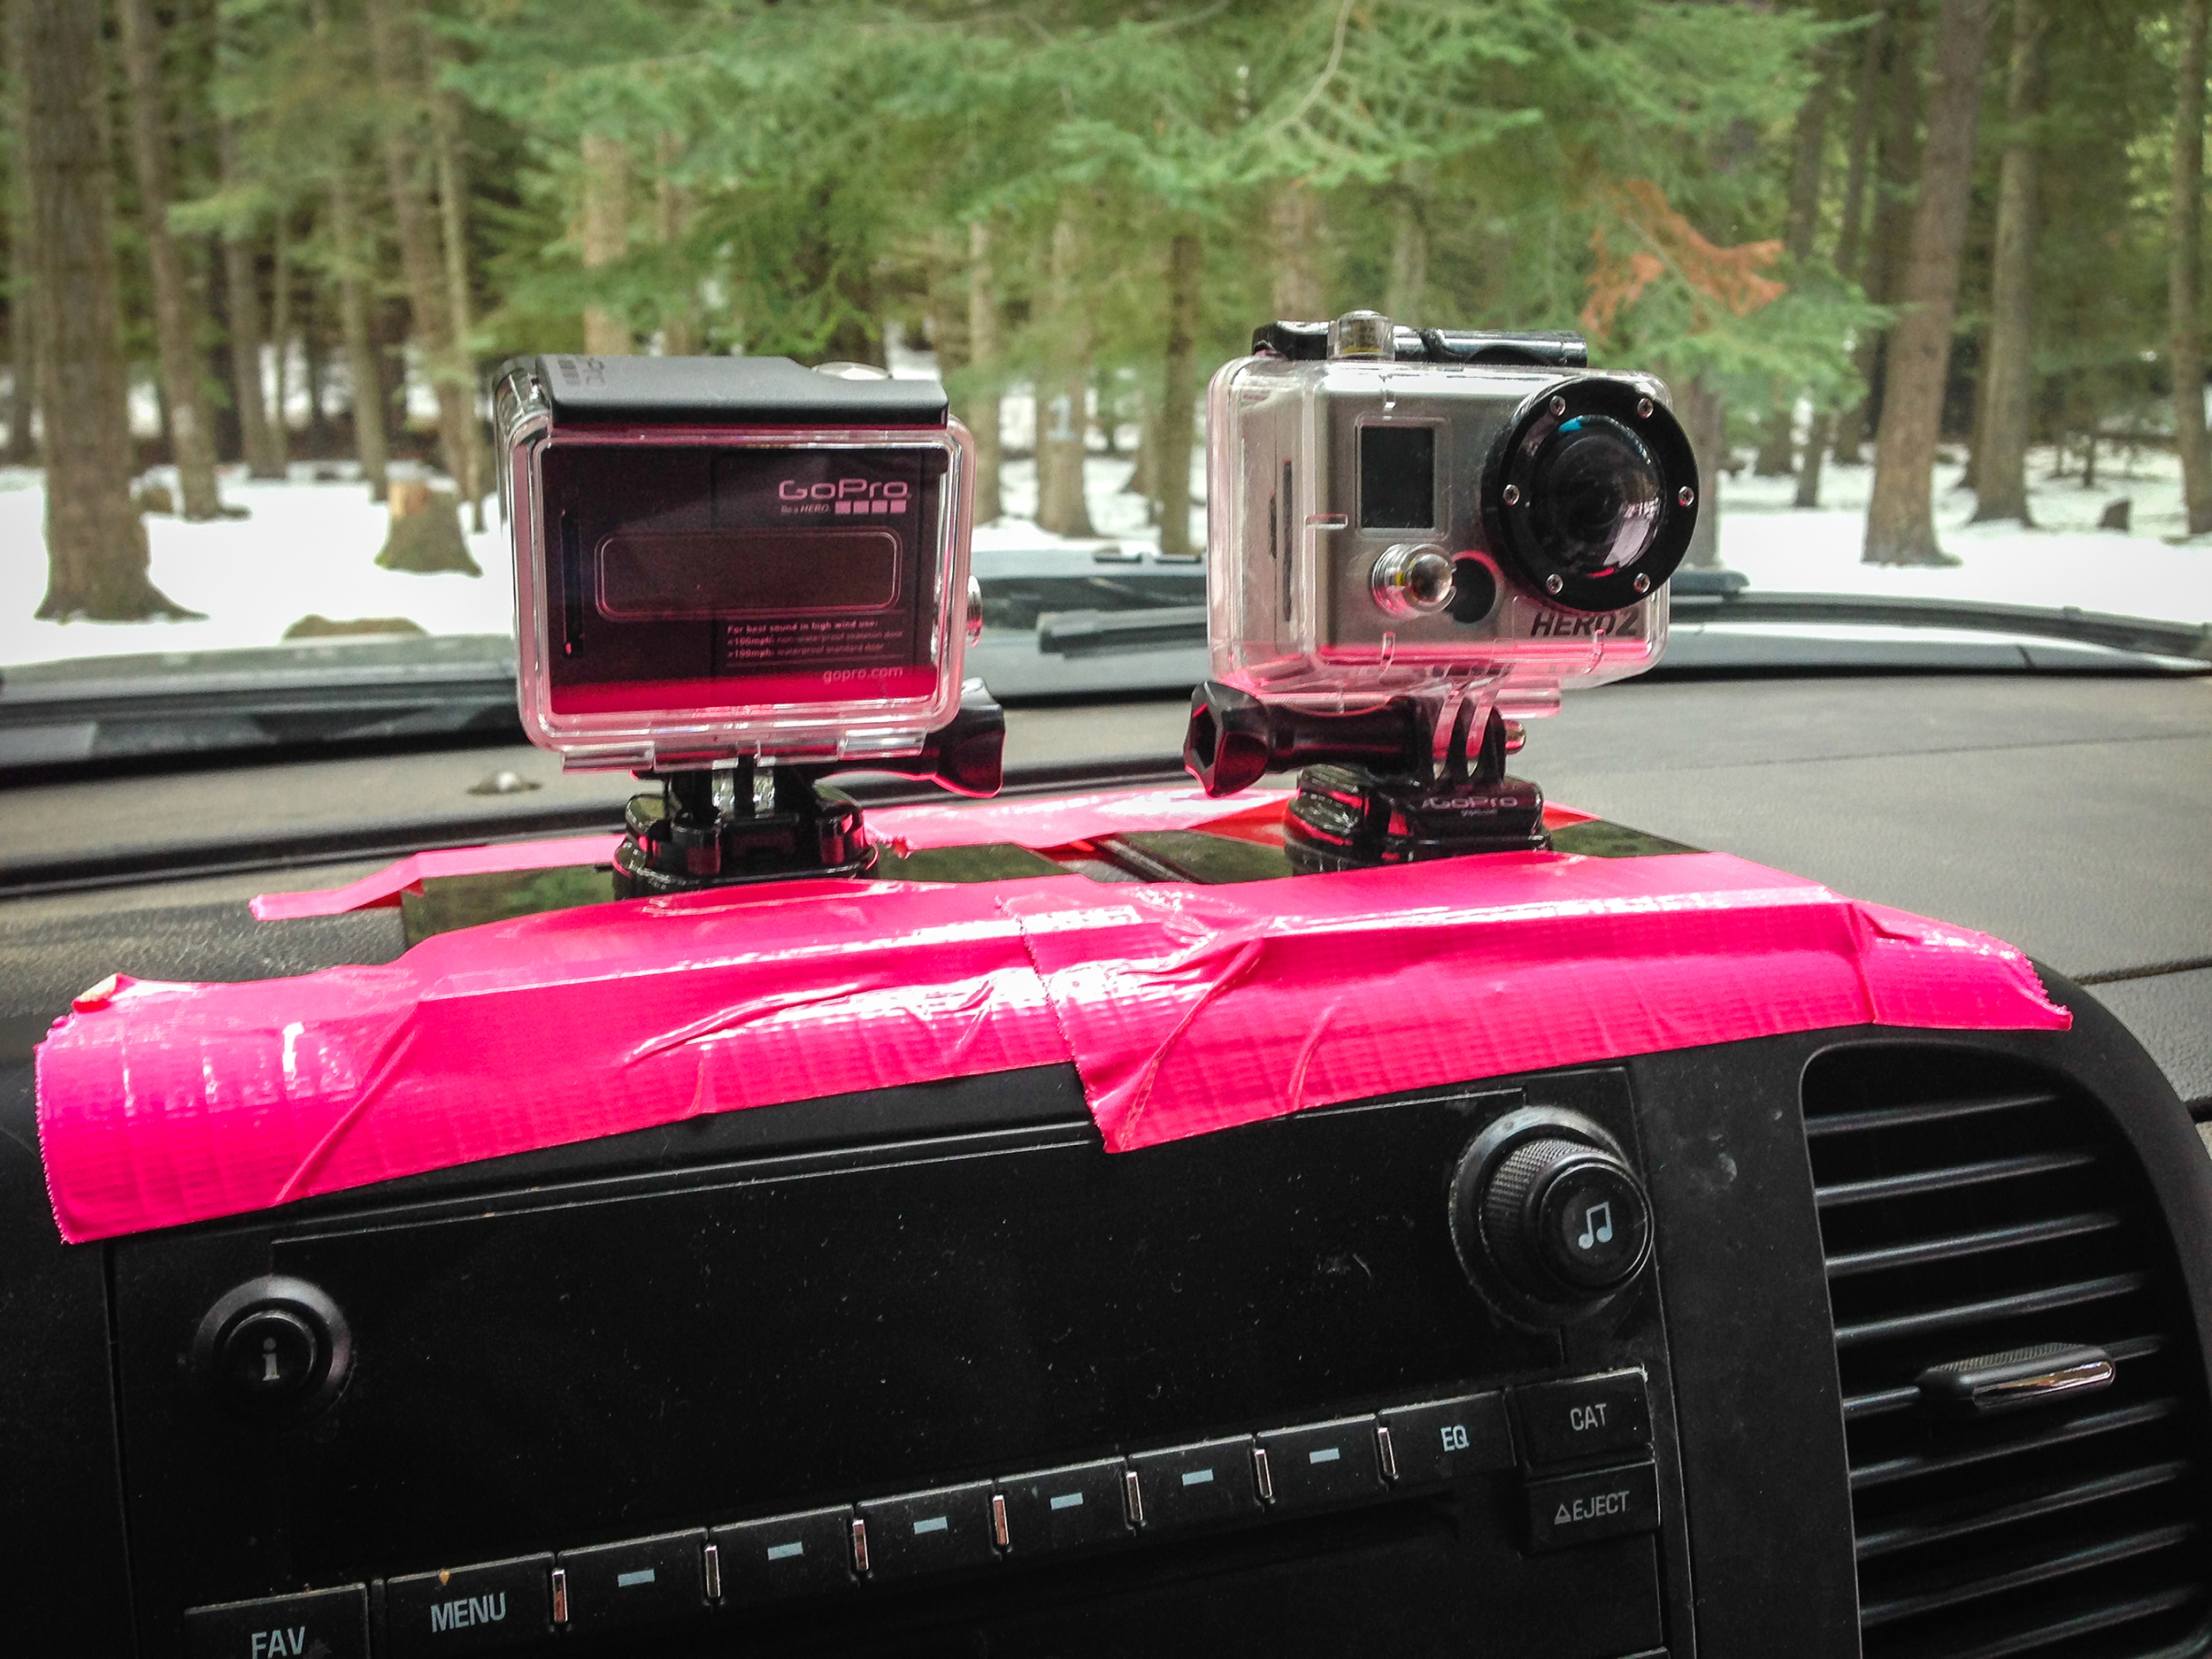 Did some time-lapsing with these guys. Gotta love the pink.